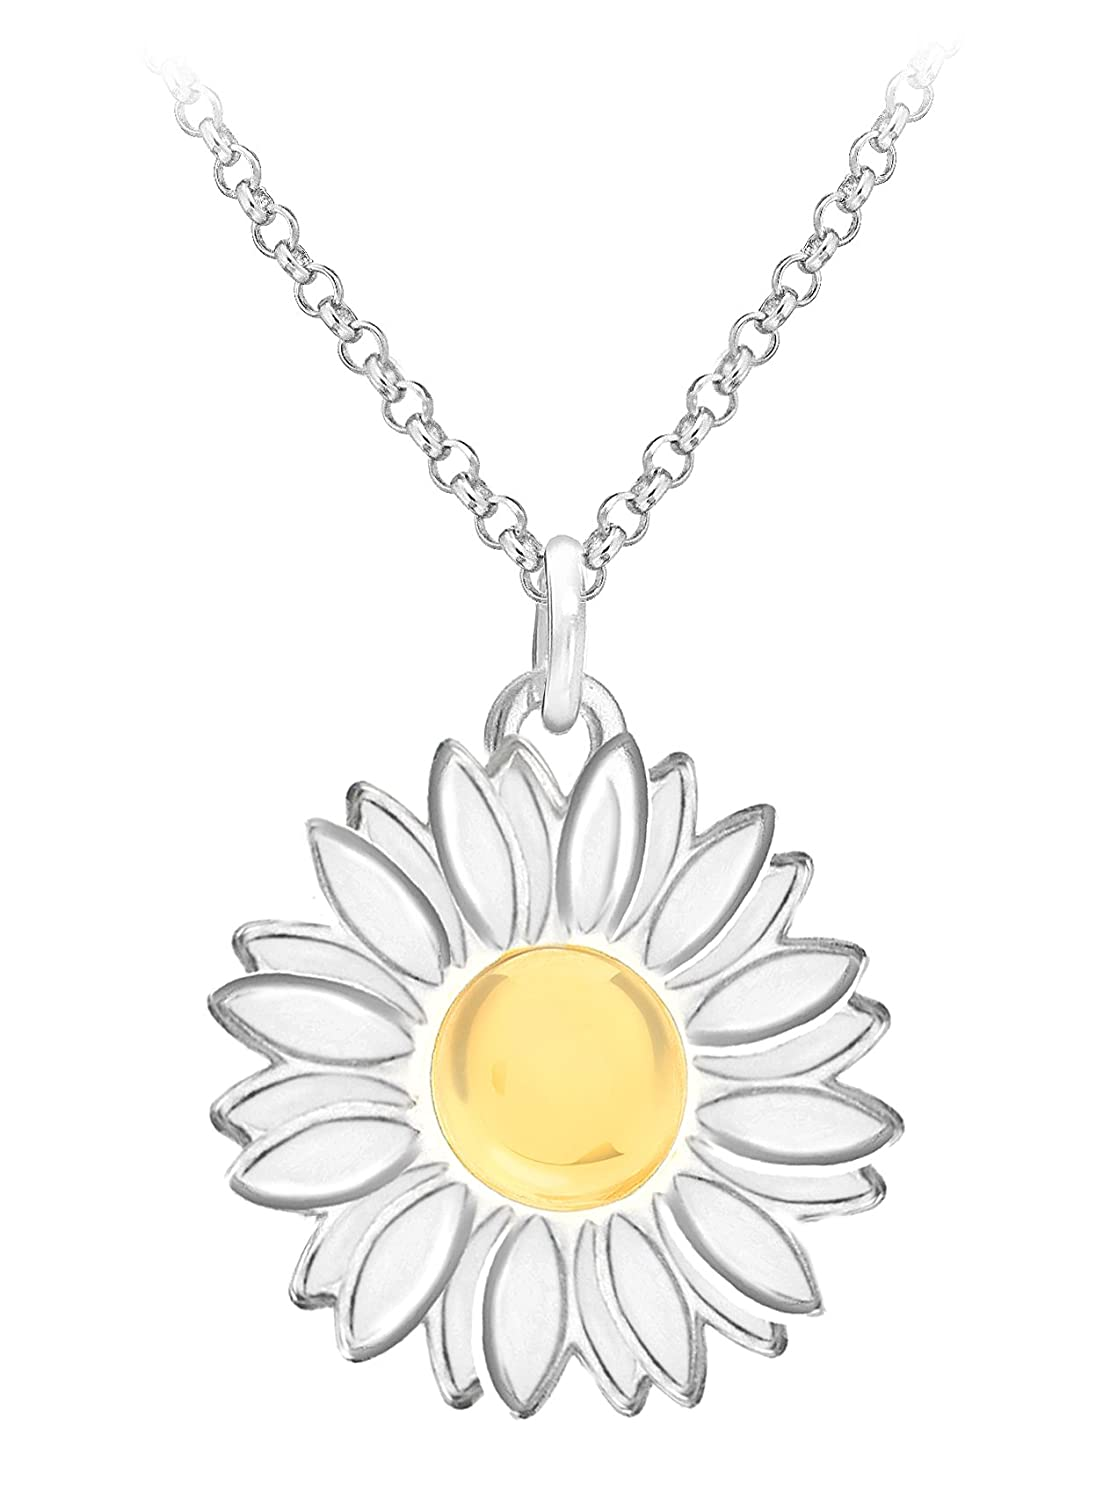 finnies pendant neckwear daisy jewellers part the image three silver sterling jewellery